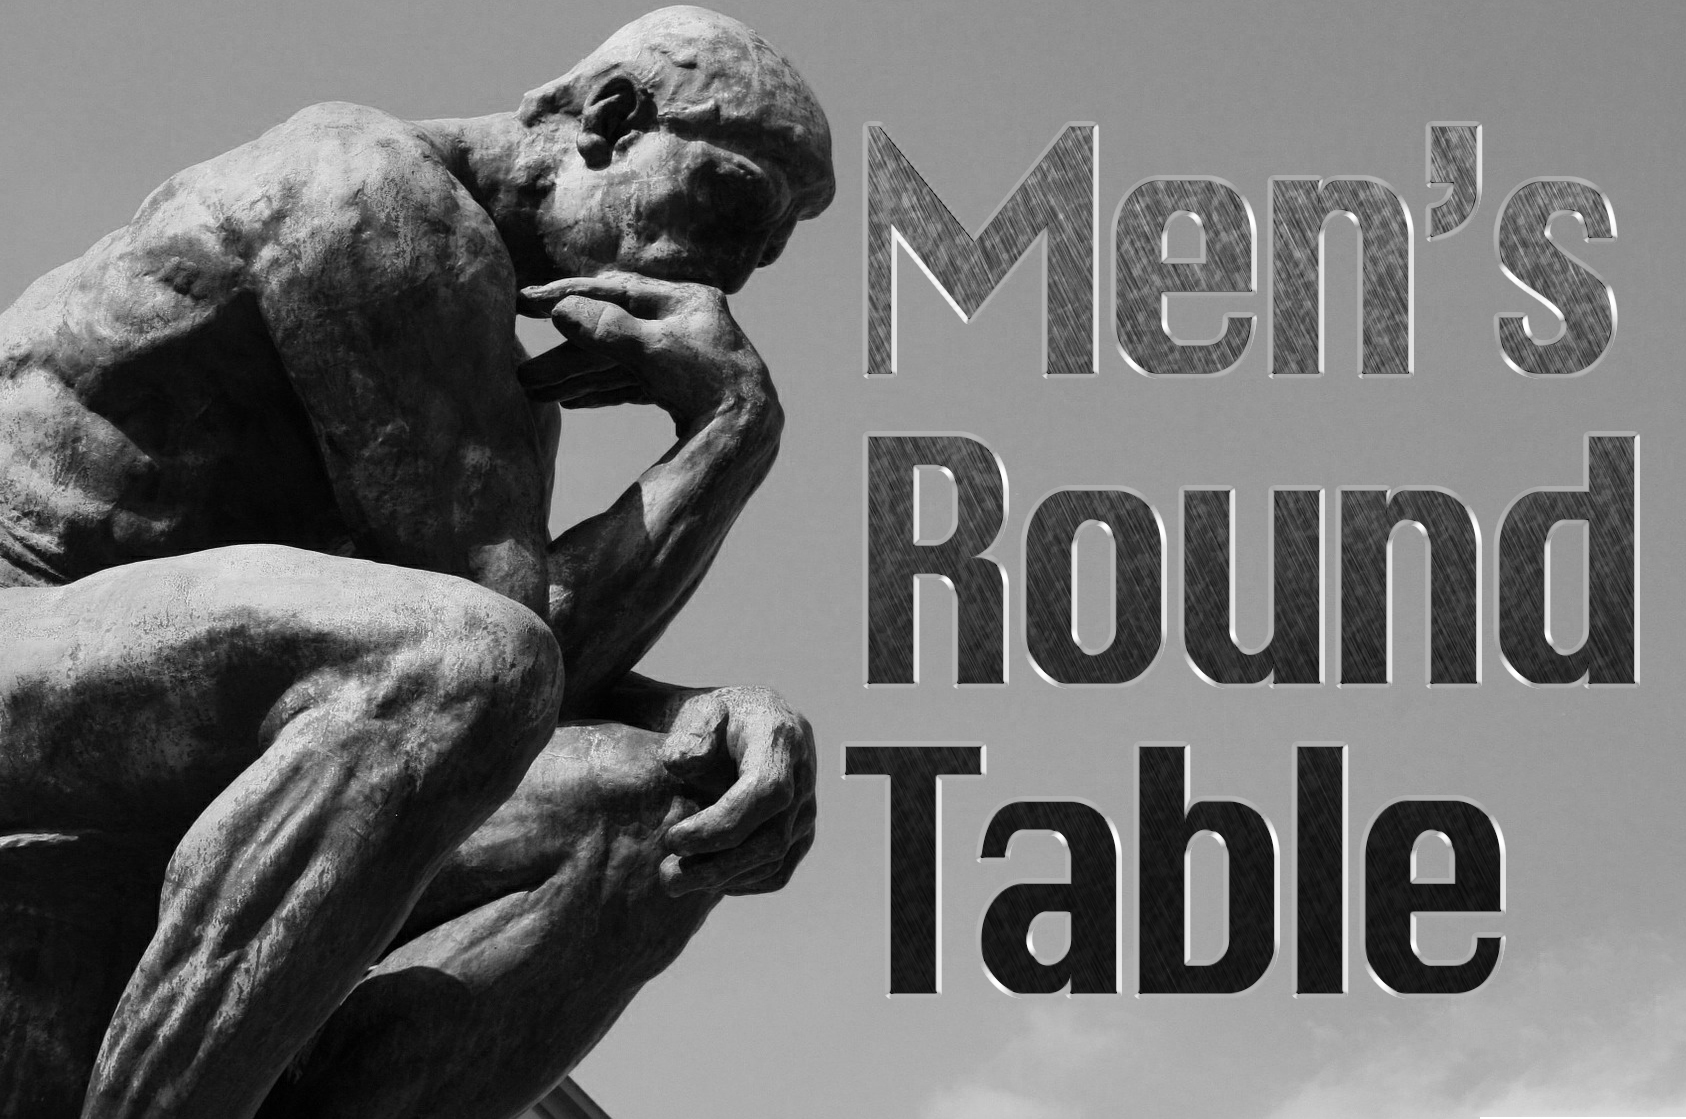 mens round table2